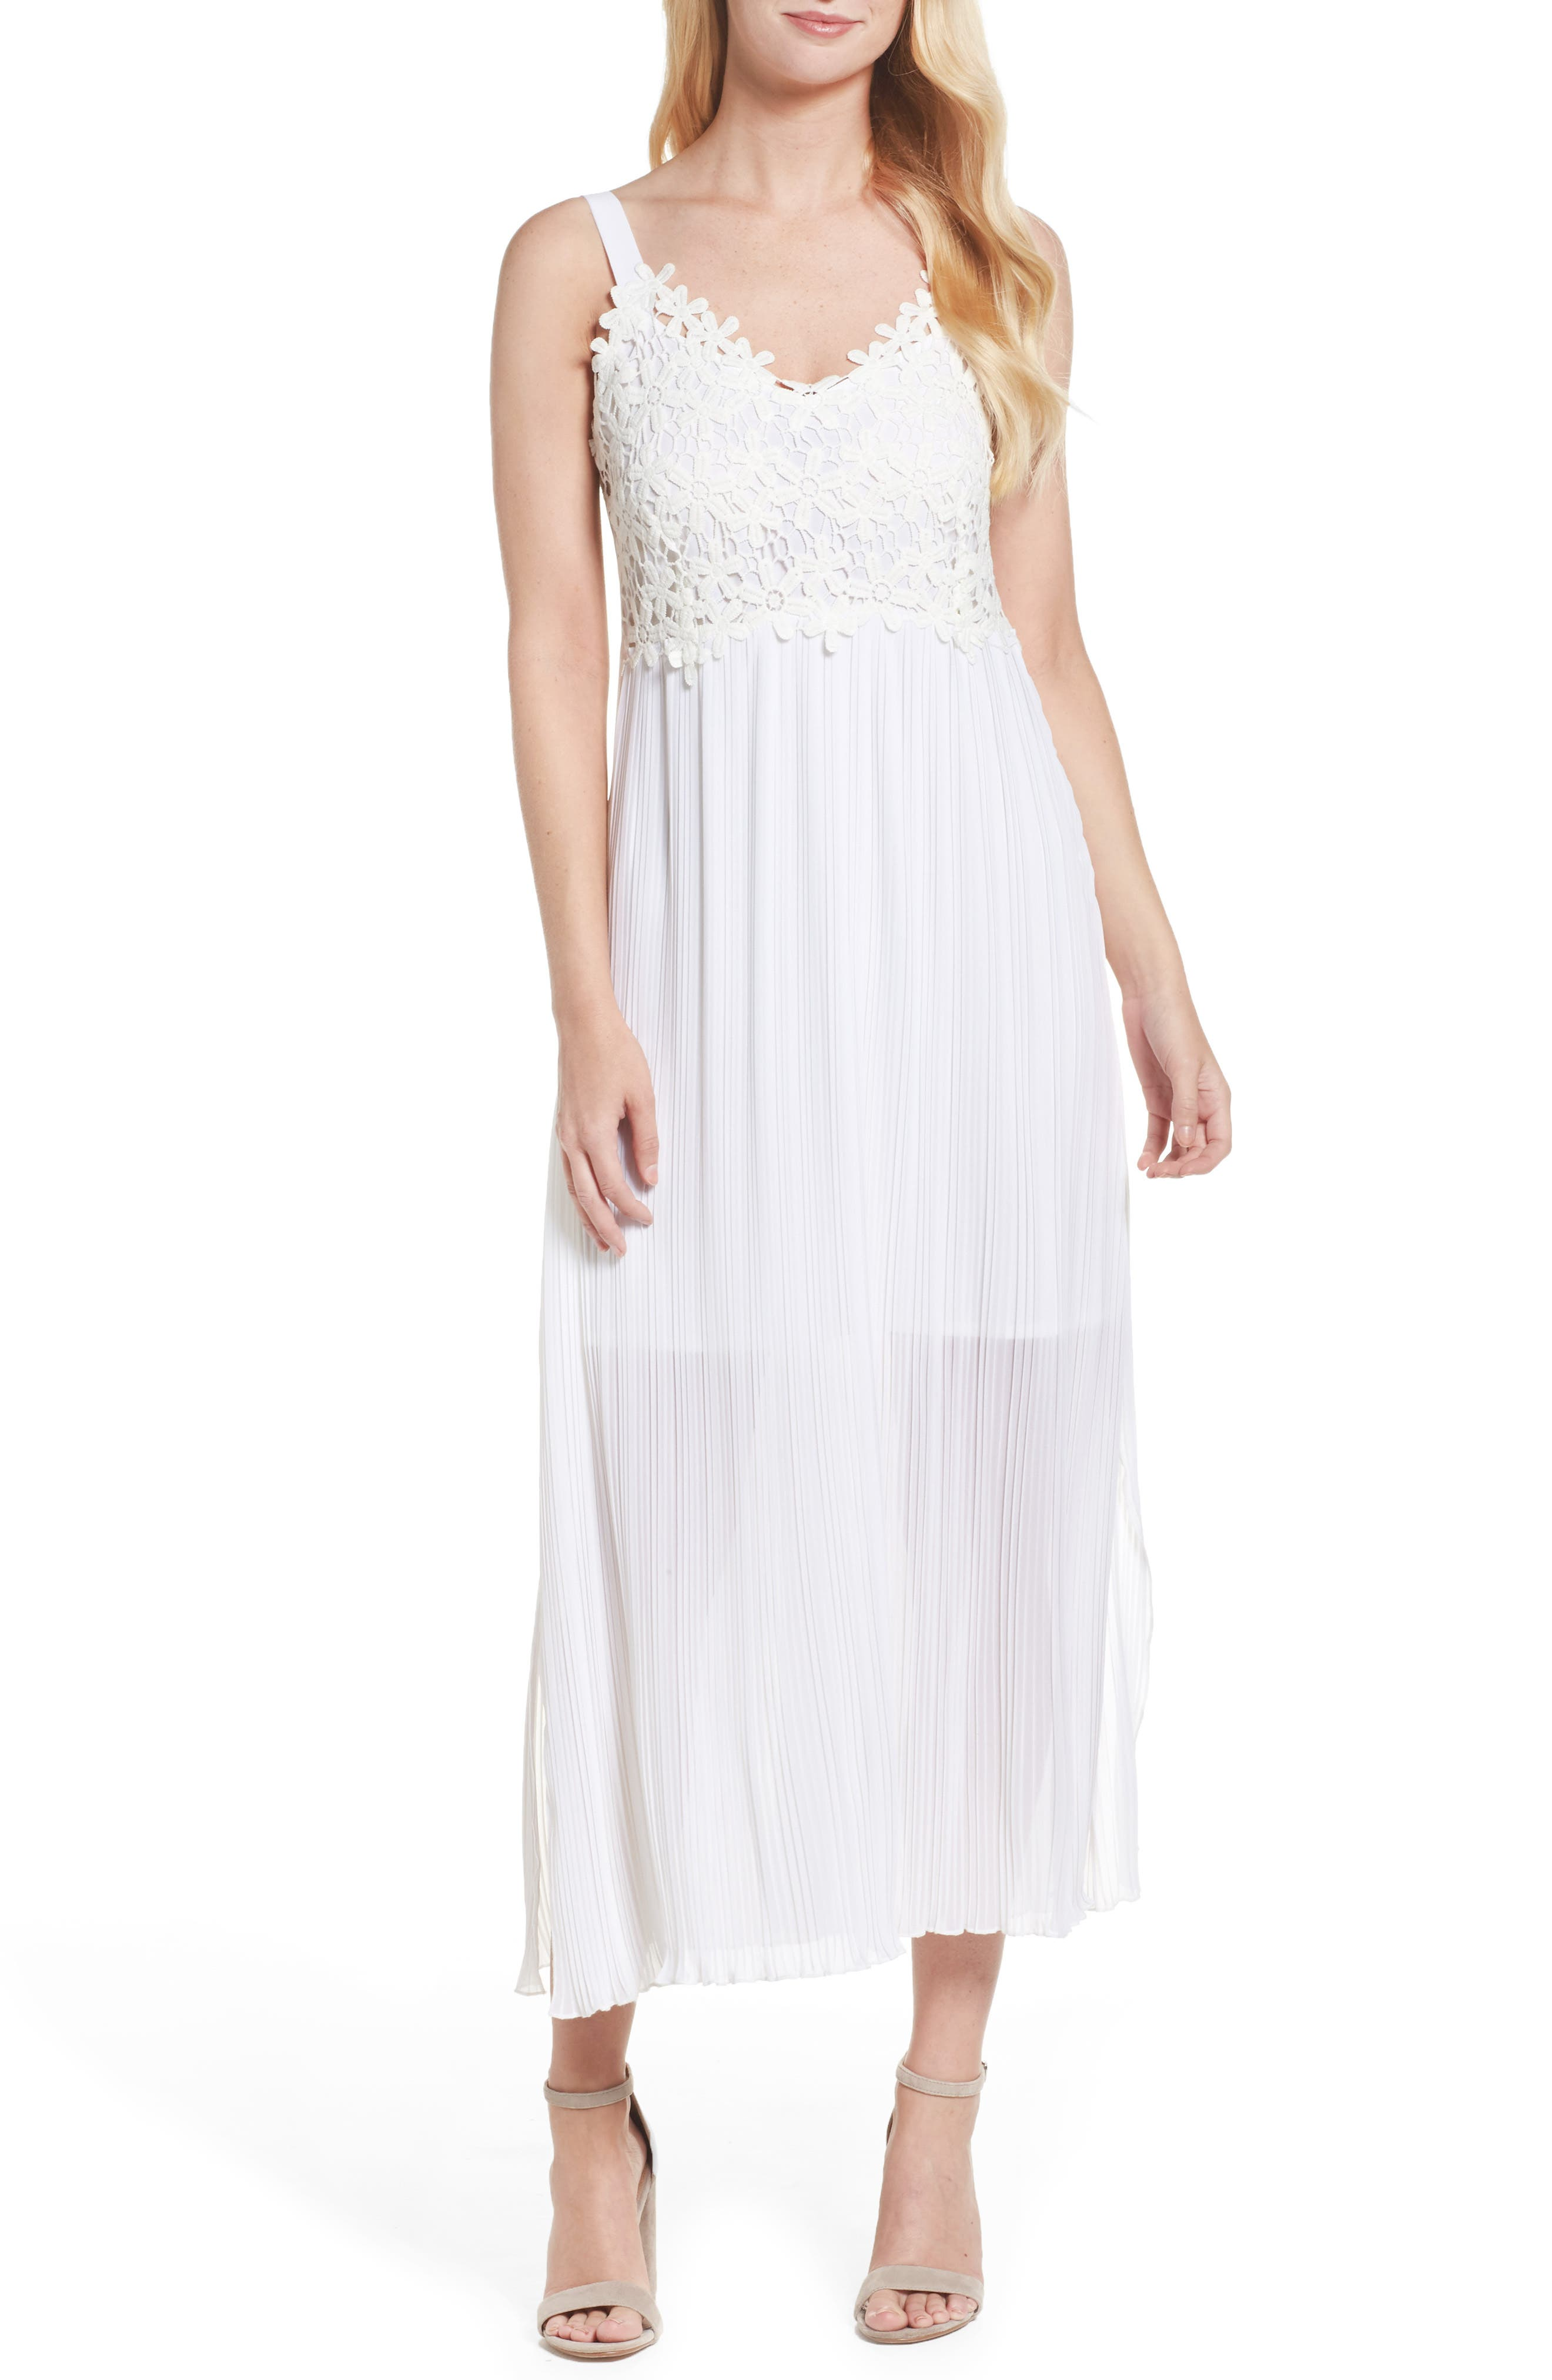 French Coonection Posy Lace Midi Dress,                             Main thumbnail 1, color,                             101